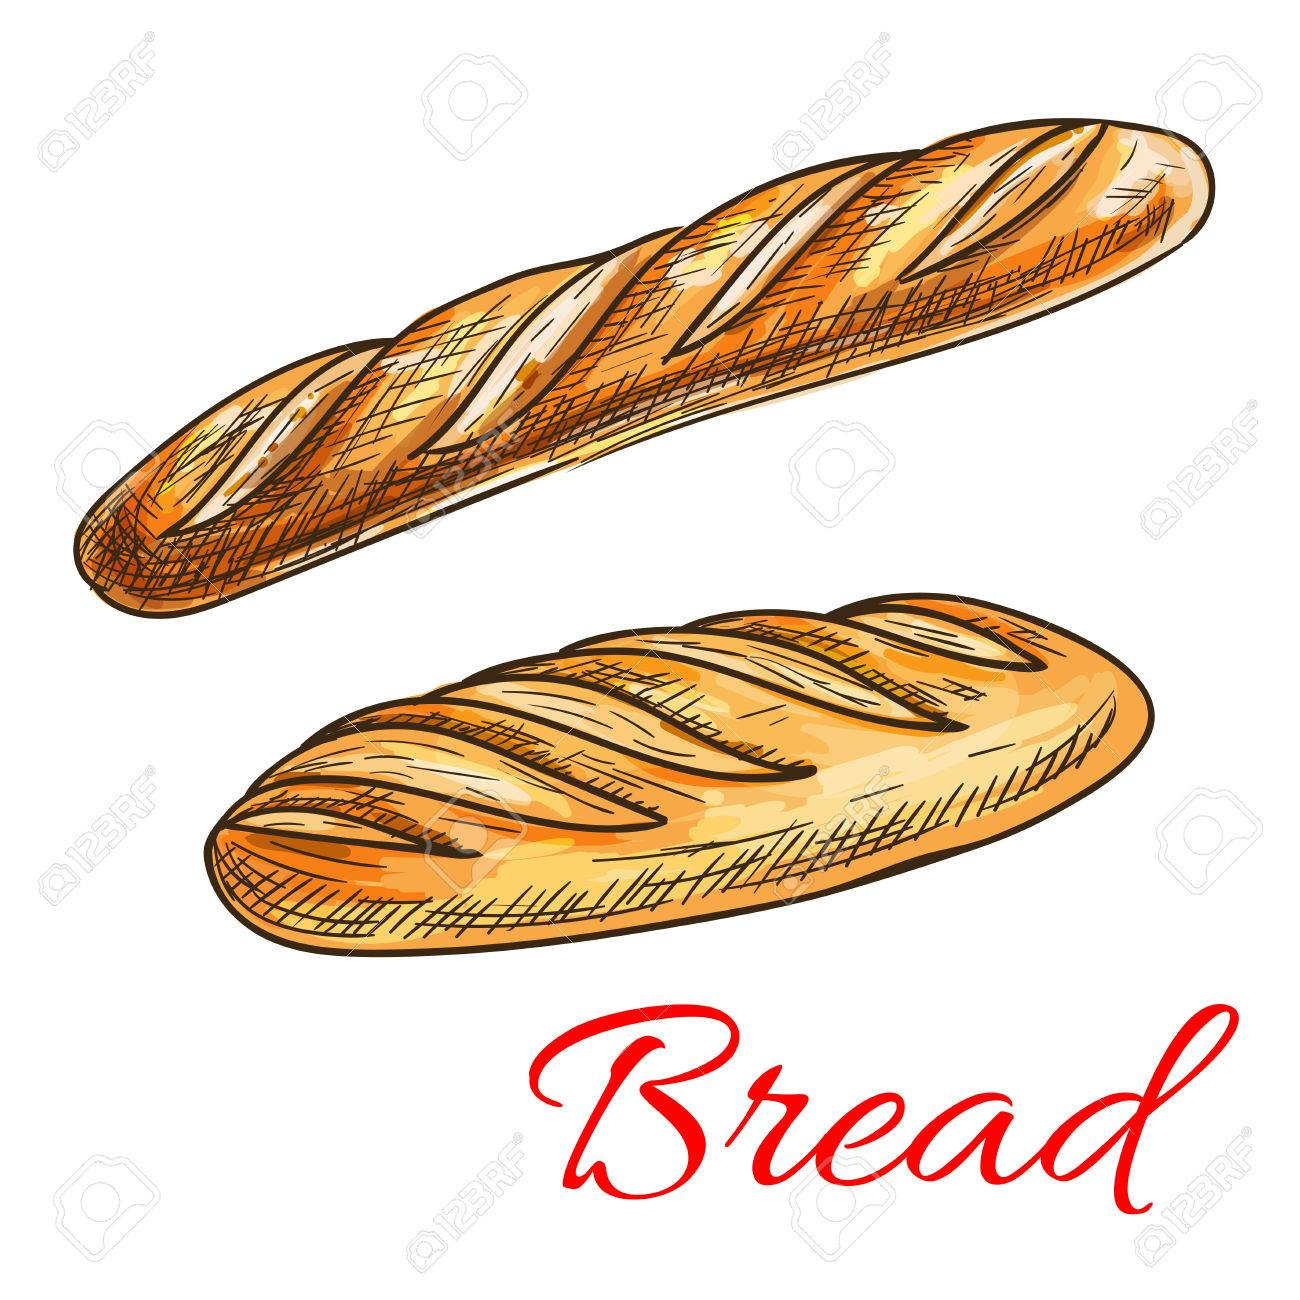 Sketch Of Wheat Bread With Fresh Crispy French Baguette And Long Loaf Bakery Shop